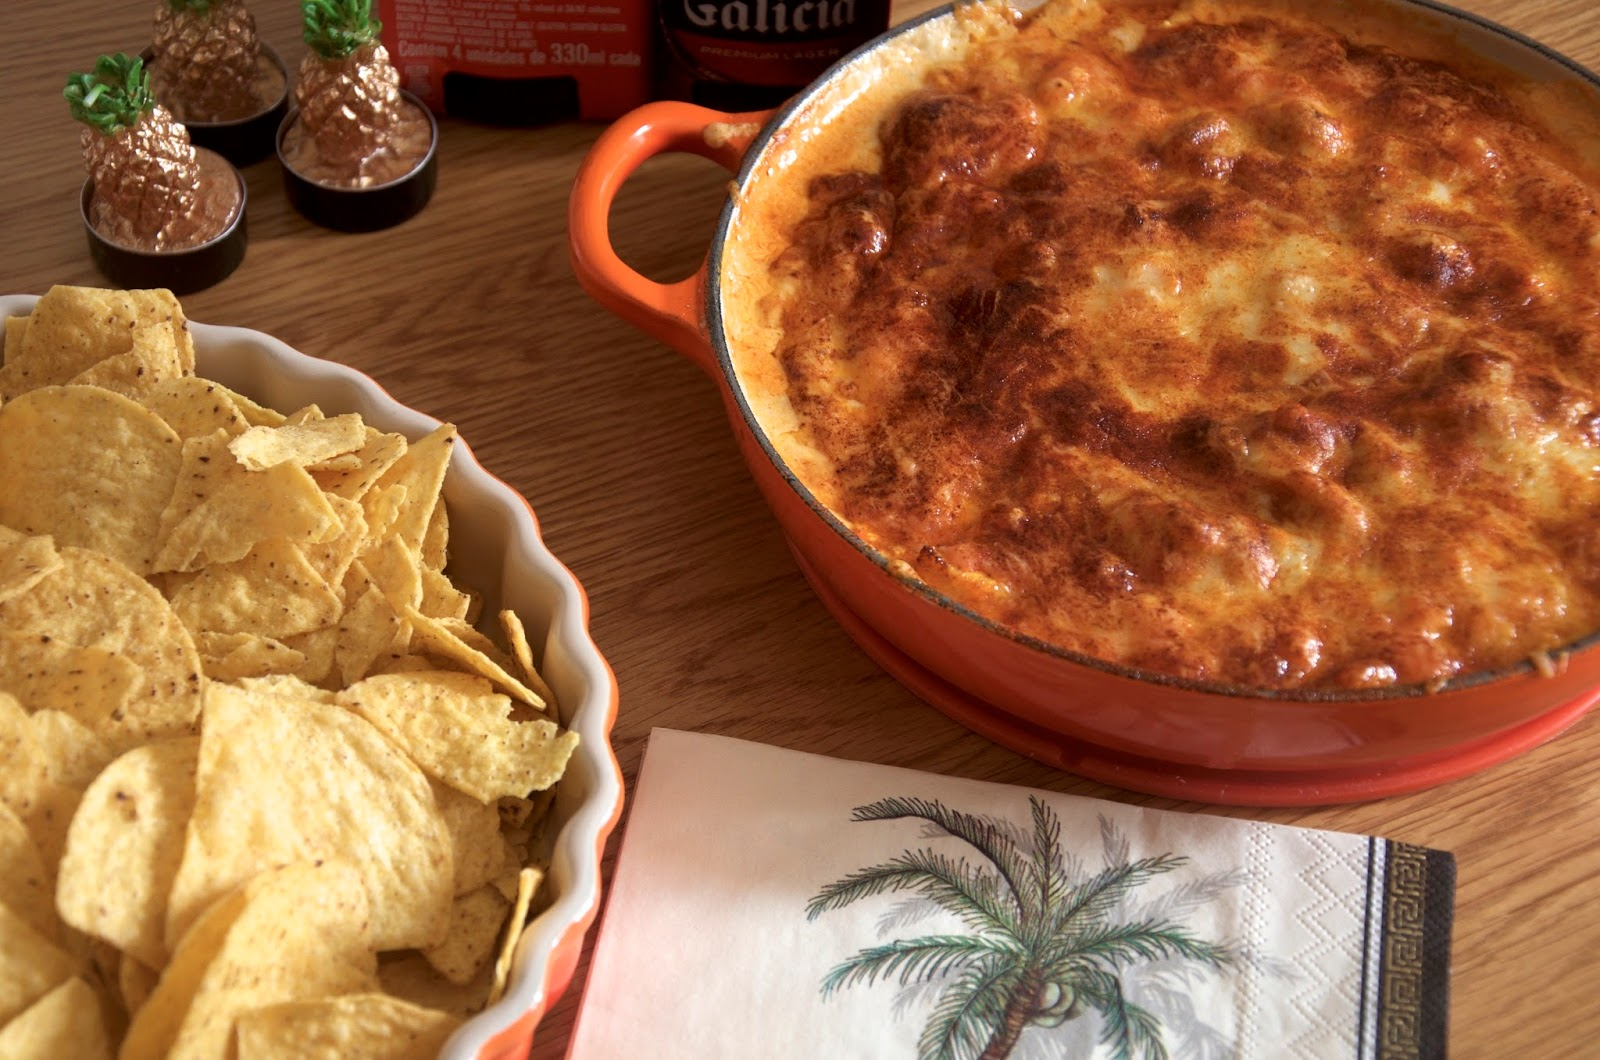 cheesy buffalo chicken dip with tortilla chips and palm tree napkin